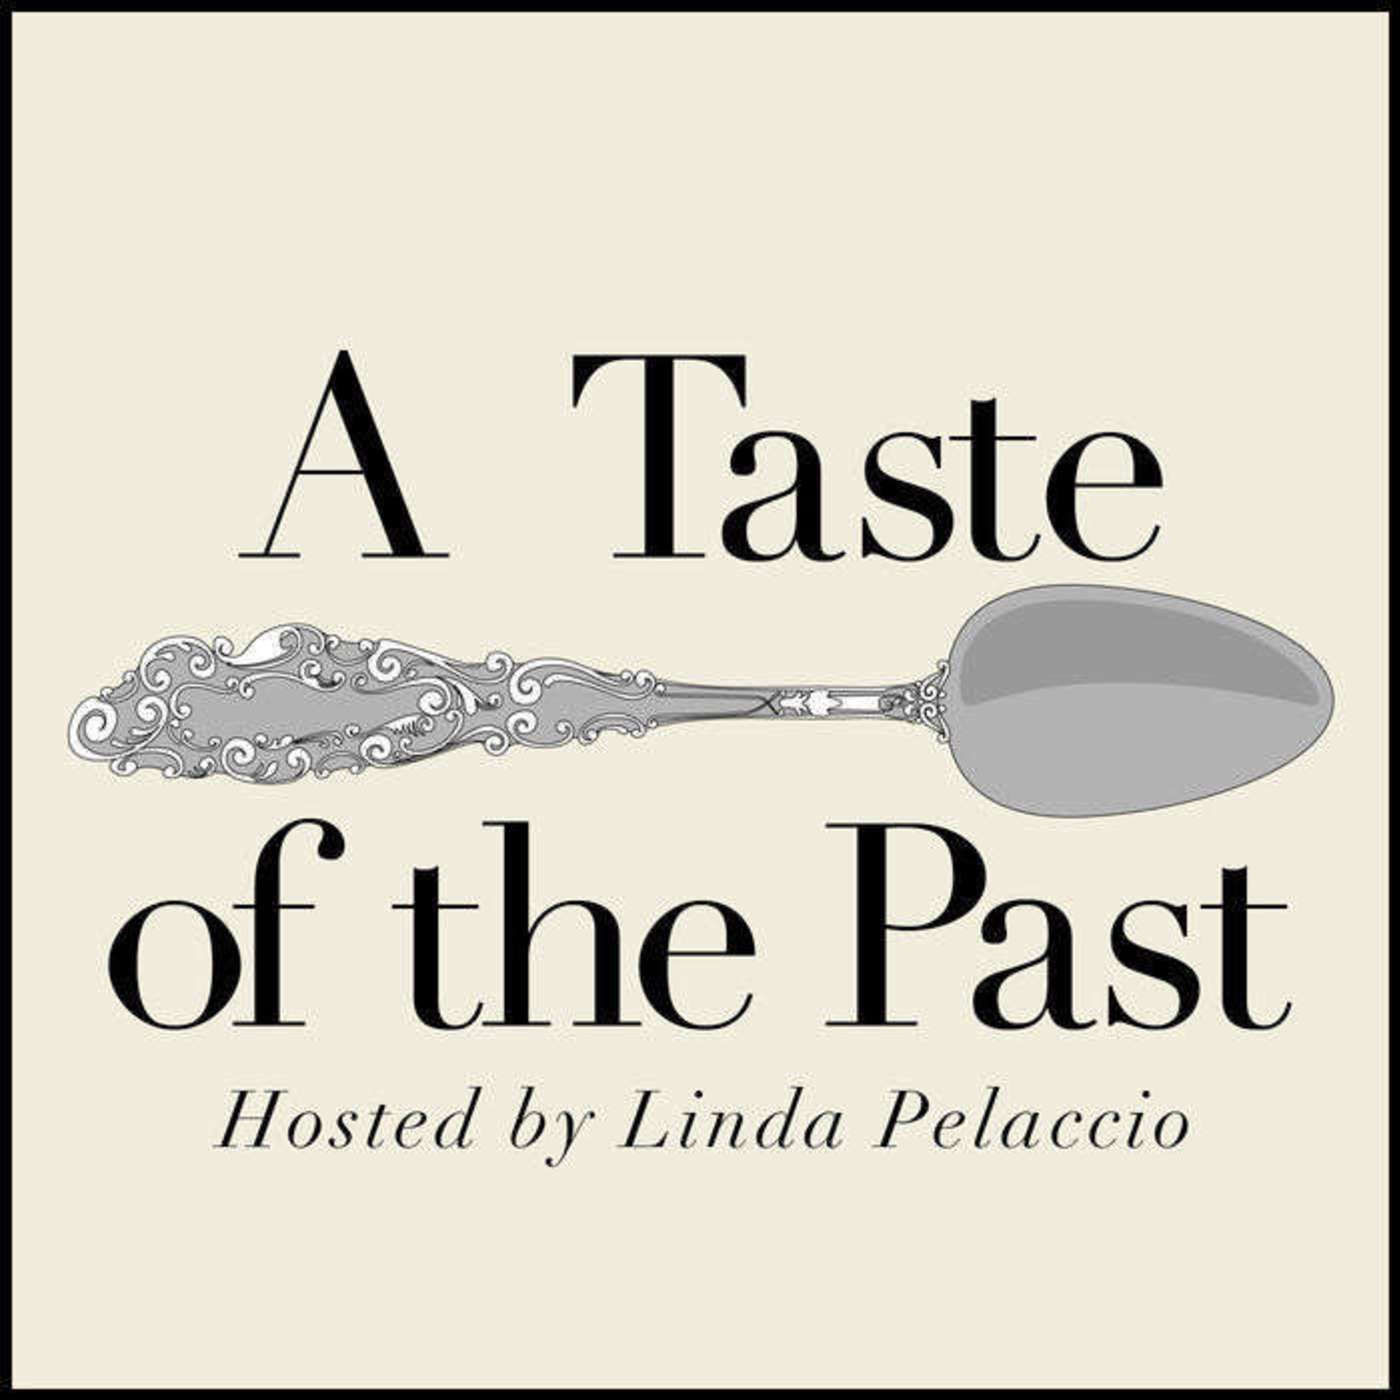 Episode 75: The Art of Eating with Ed Behr